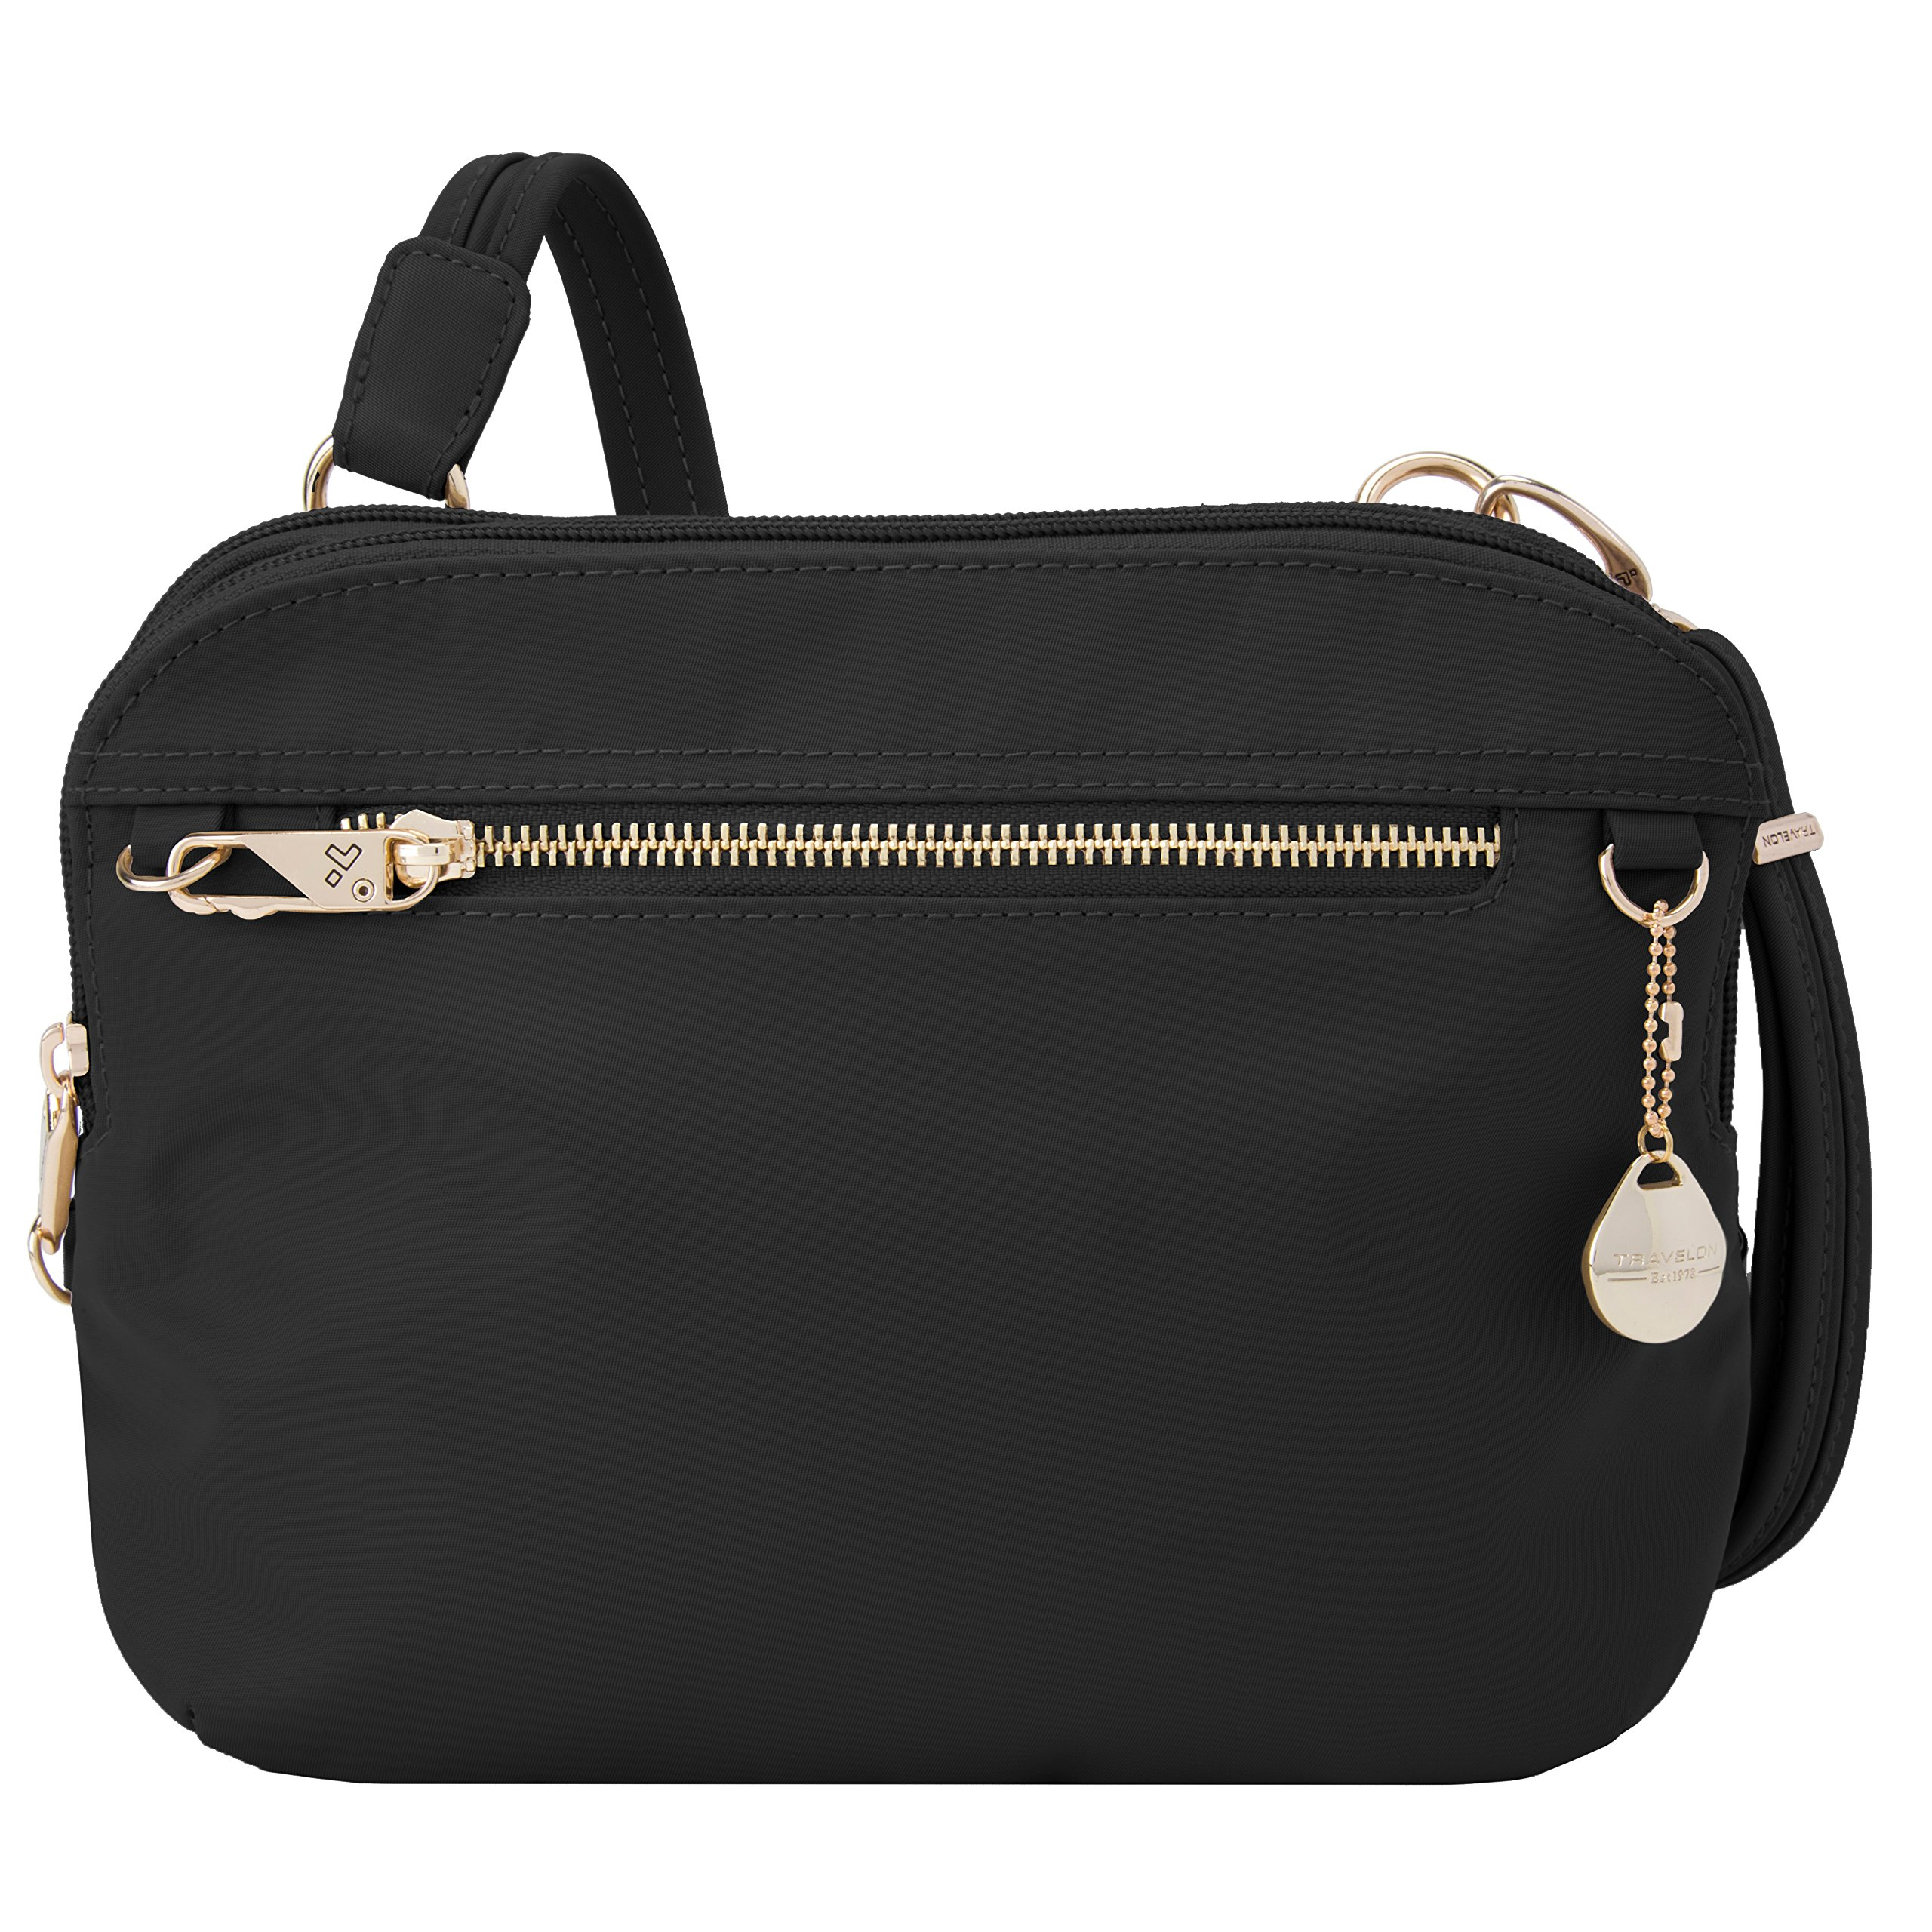 Travelon Women's Anti-Theft Tailored E/w Organizer Travel Purse, Onyx, One Size by Travelon